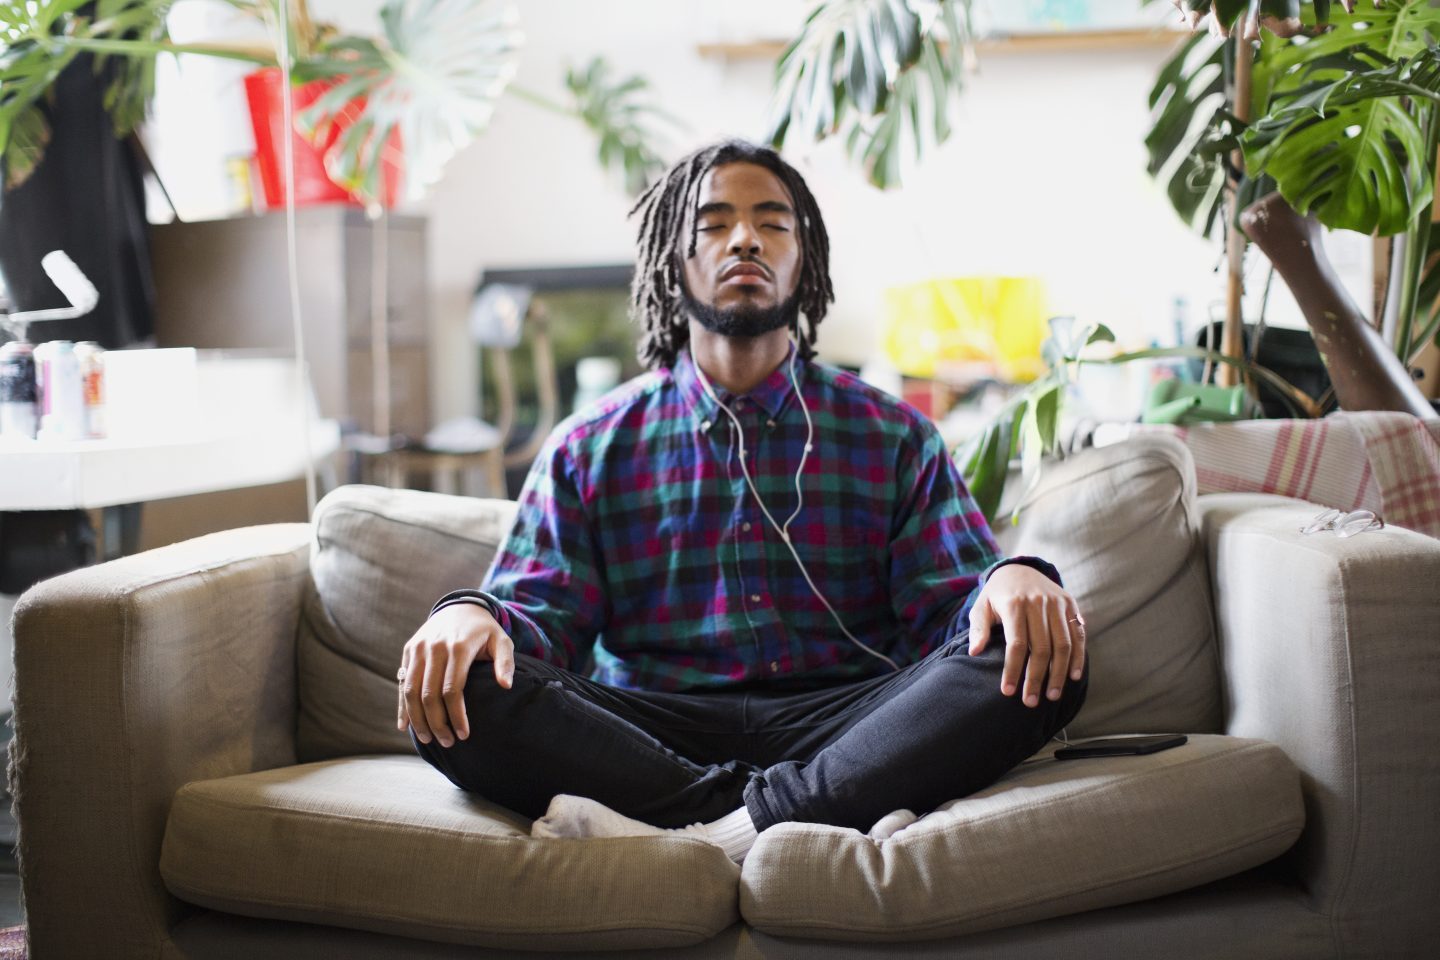 Serene young man listens to a podcast with headphones on apartment sofa | Listen to podcasts